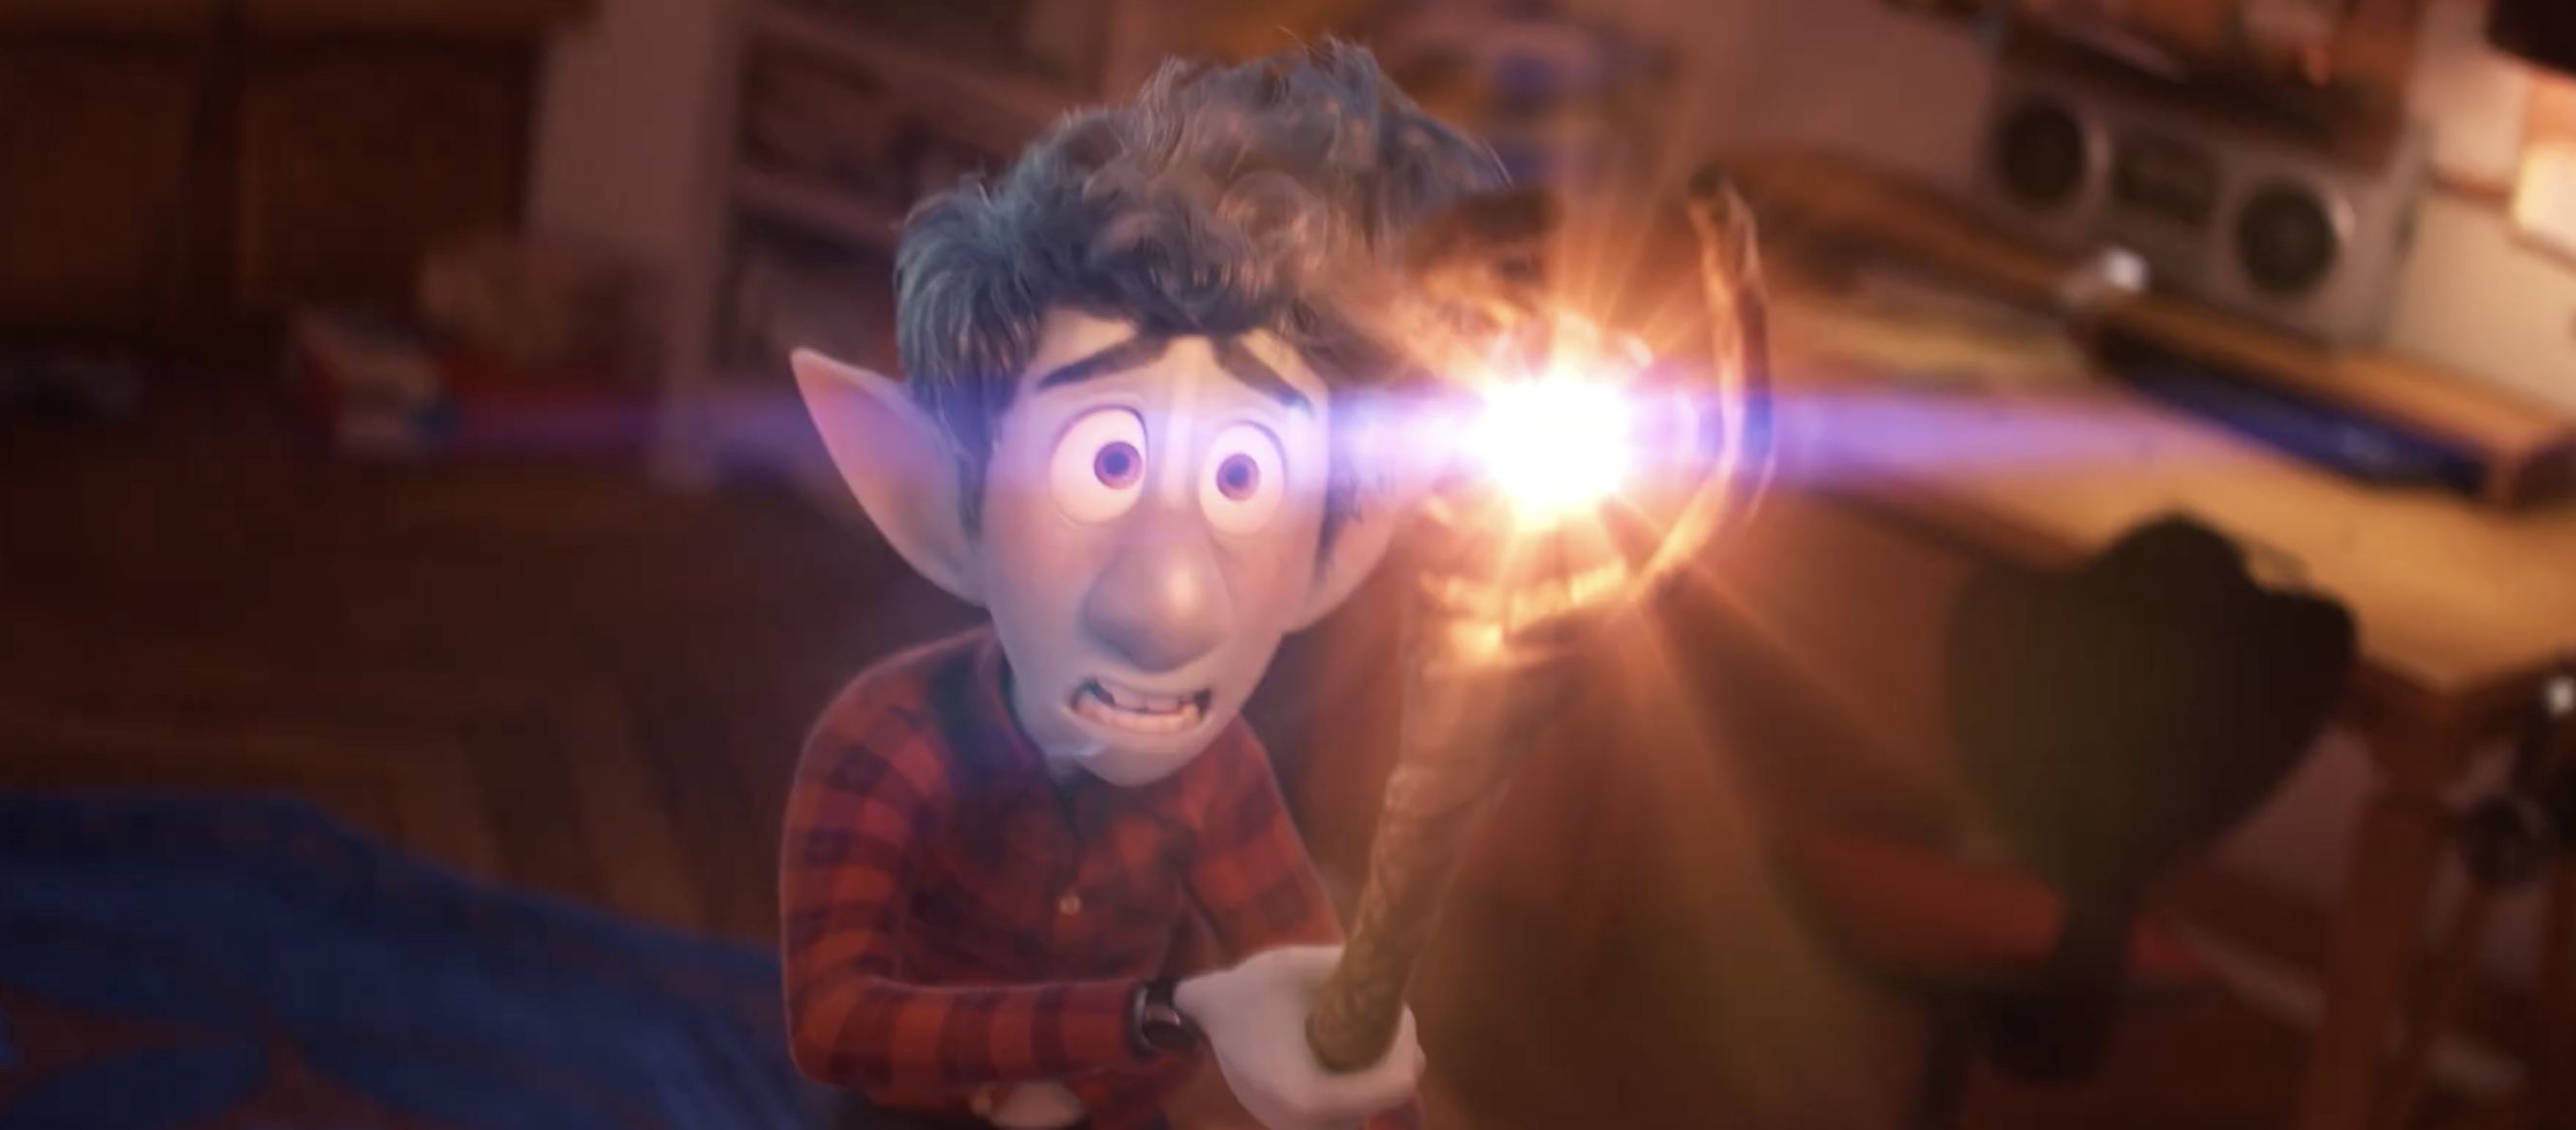 tom holland's character Ian, a scrawny blue-skinned elf, wields a magical staff